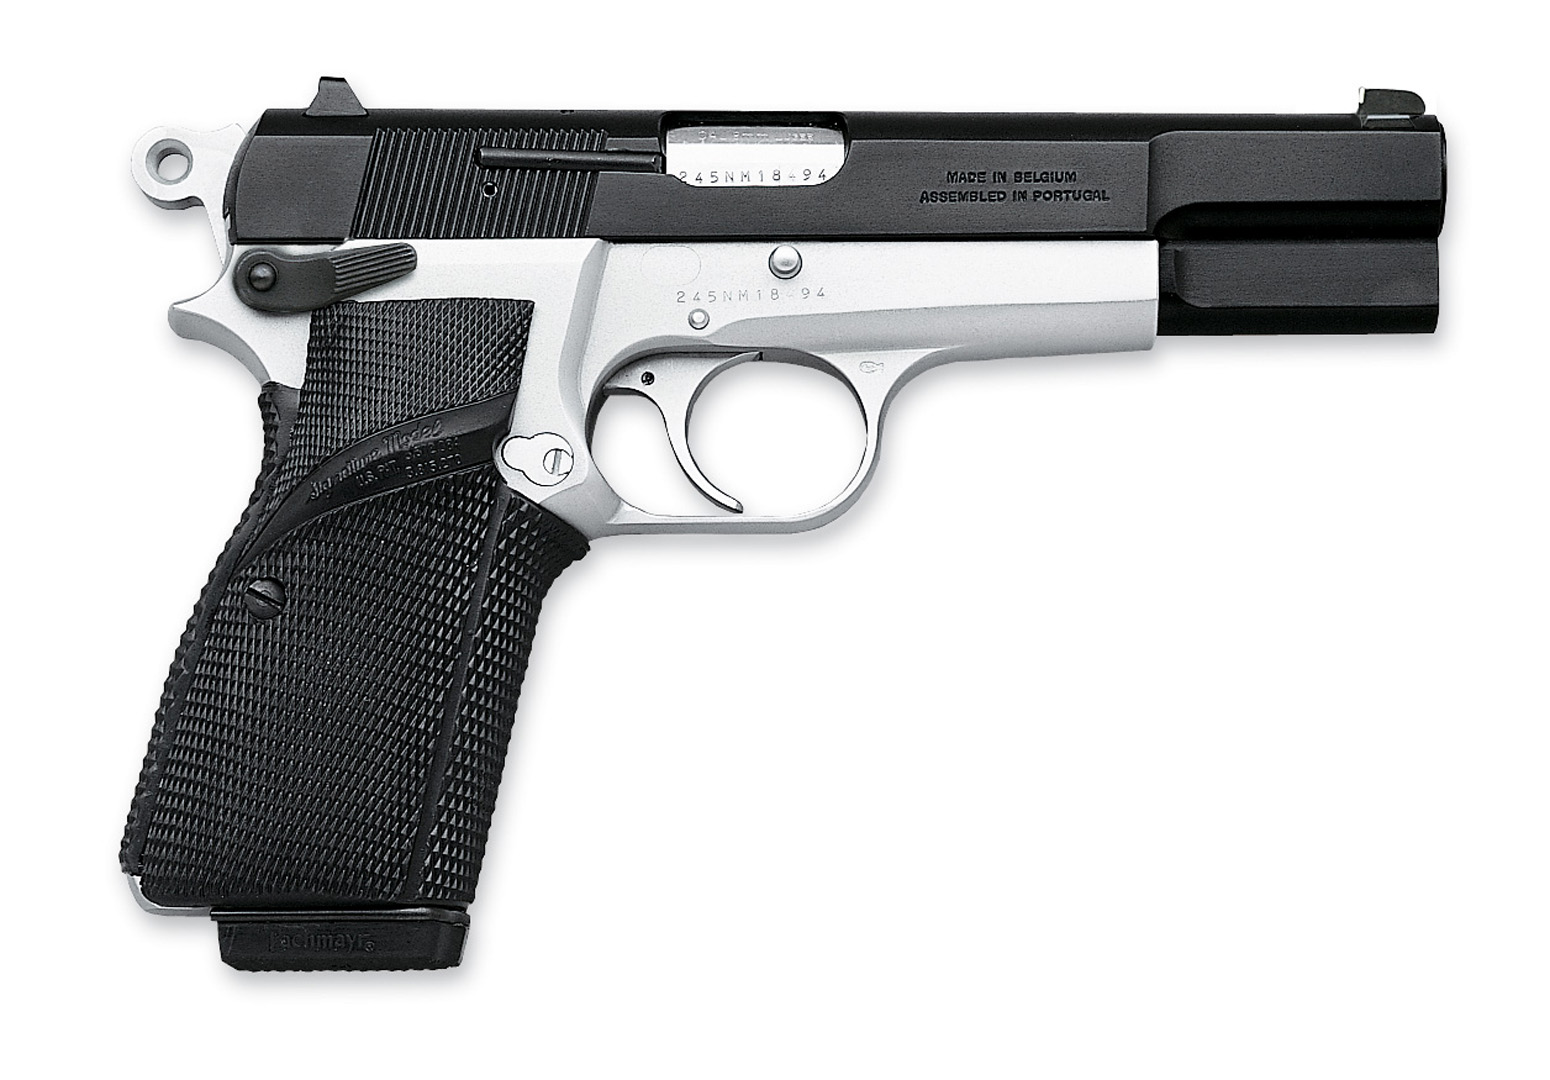 M1911 Pistol | Army and Weapons